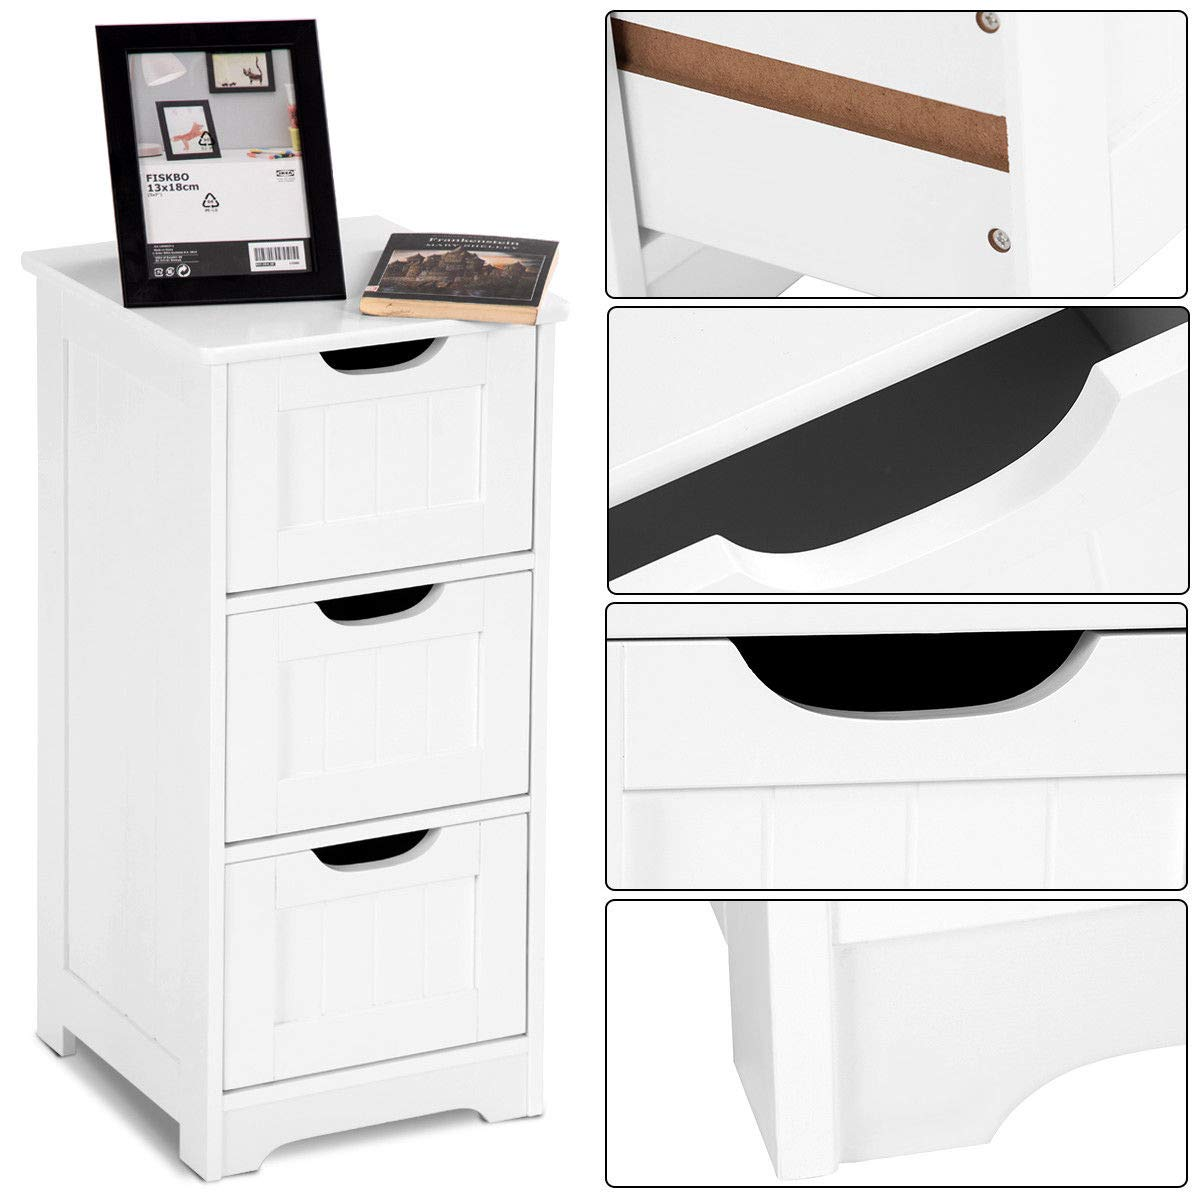 Tangkula Floor Cabinet with 3 Drawers Wooden Storage Cabinet for Home Office Living Room Bathroom Side Table Sturdy Modern Drawer Cabinet Organizer Bedroom Night Stand, White(3 Drawers) by TANGKULA (Image #6)